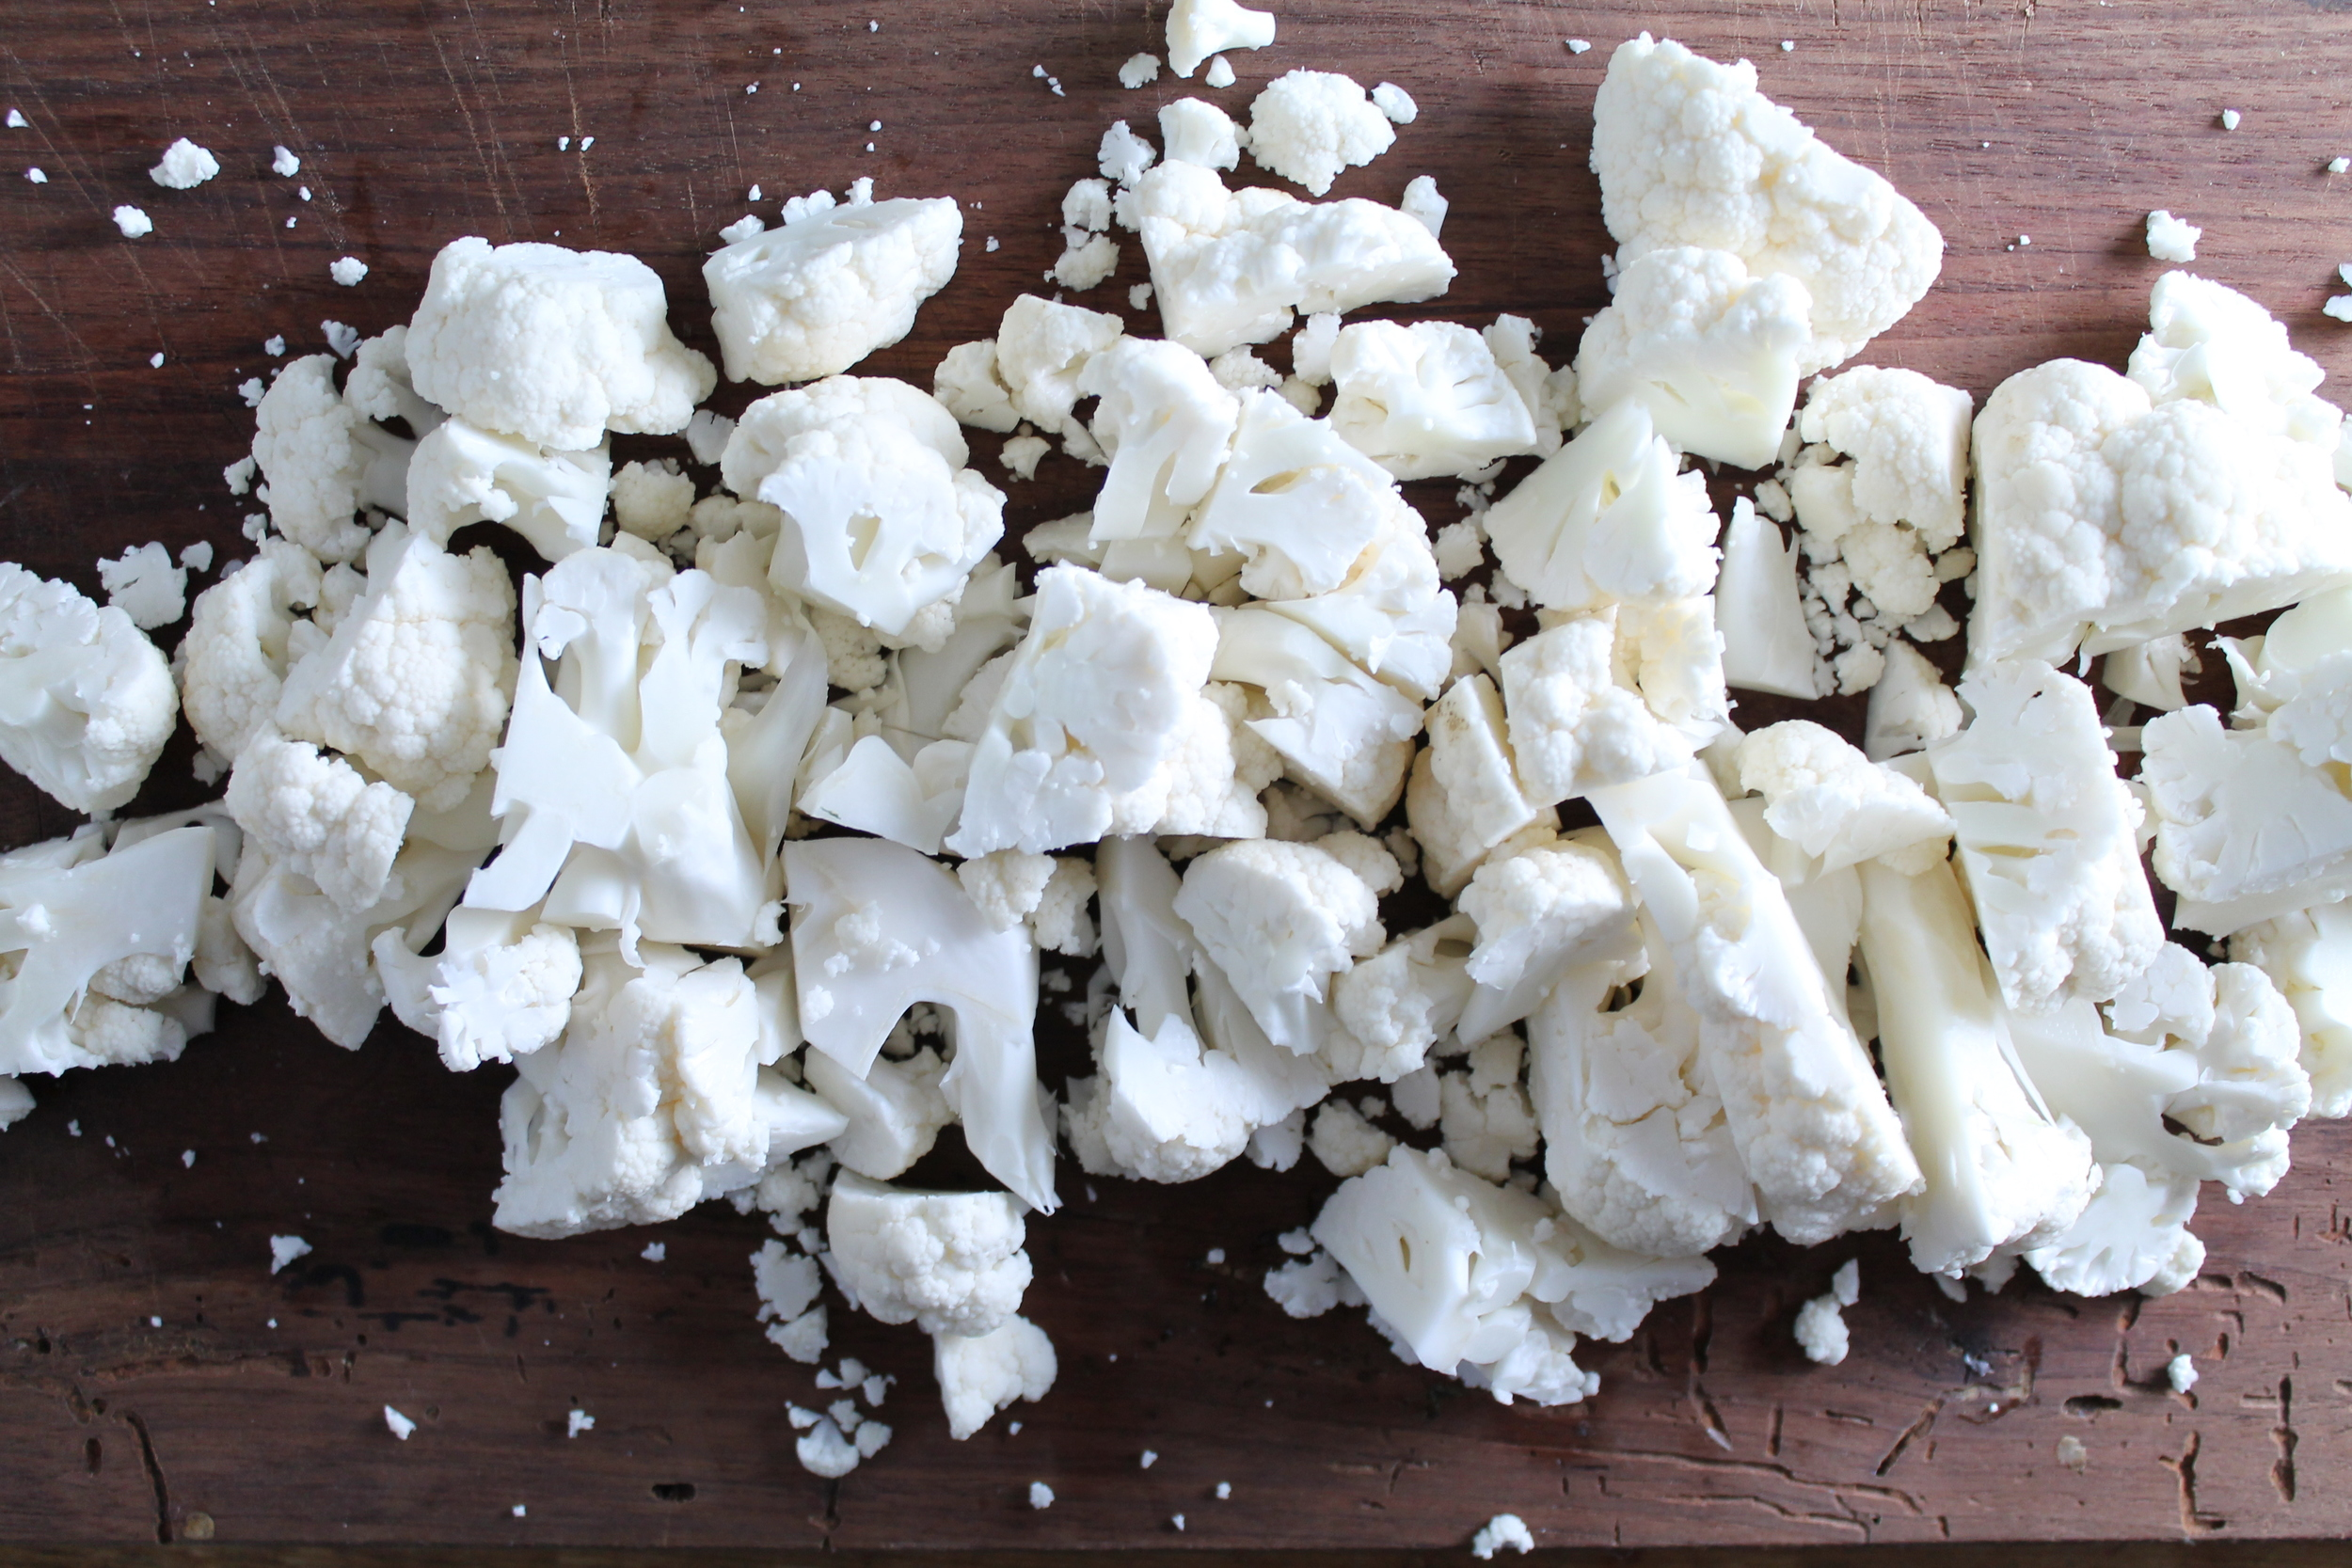 Chopped Cauliflower | www.hungryinlove.com